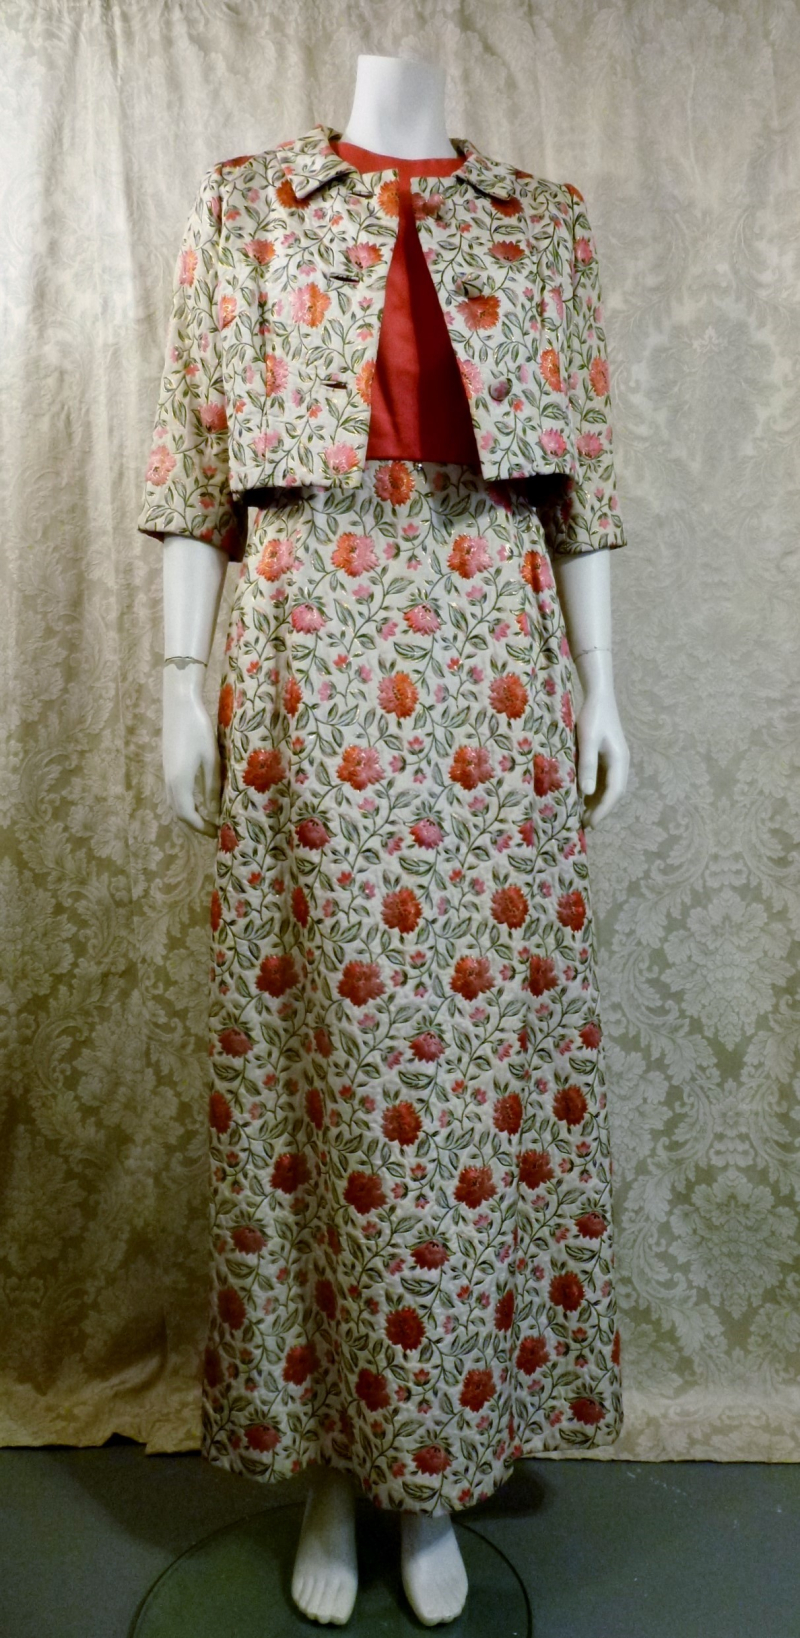 St. Regis Room Simpson's 1960s Vintage floral lame' silk damask brocade evening gown & bolero jacket (1)